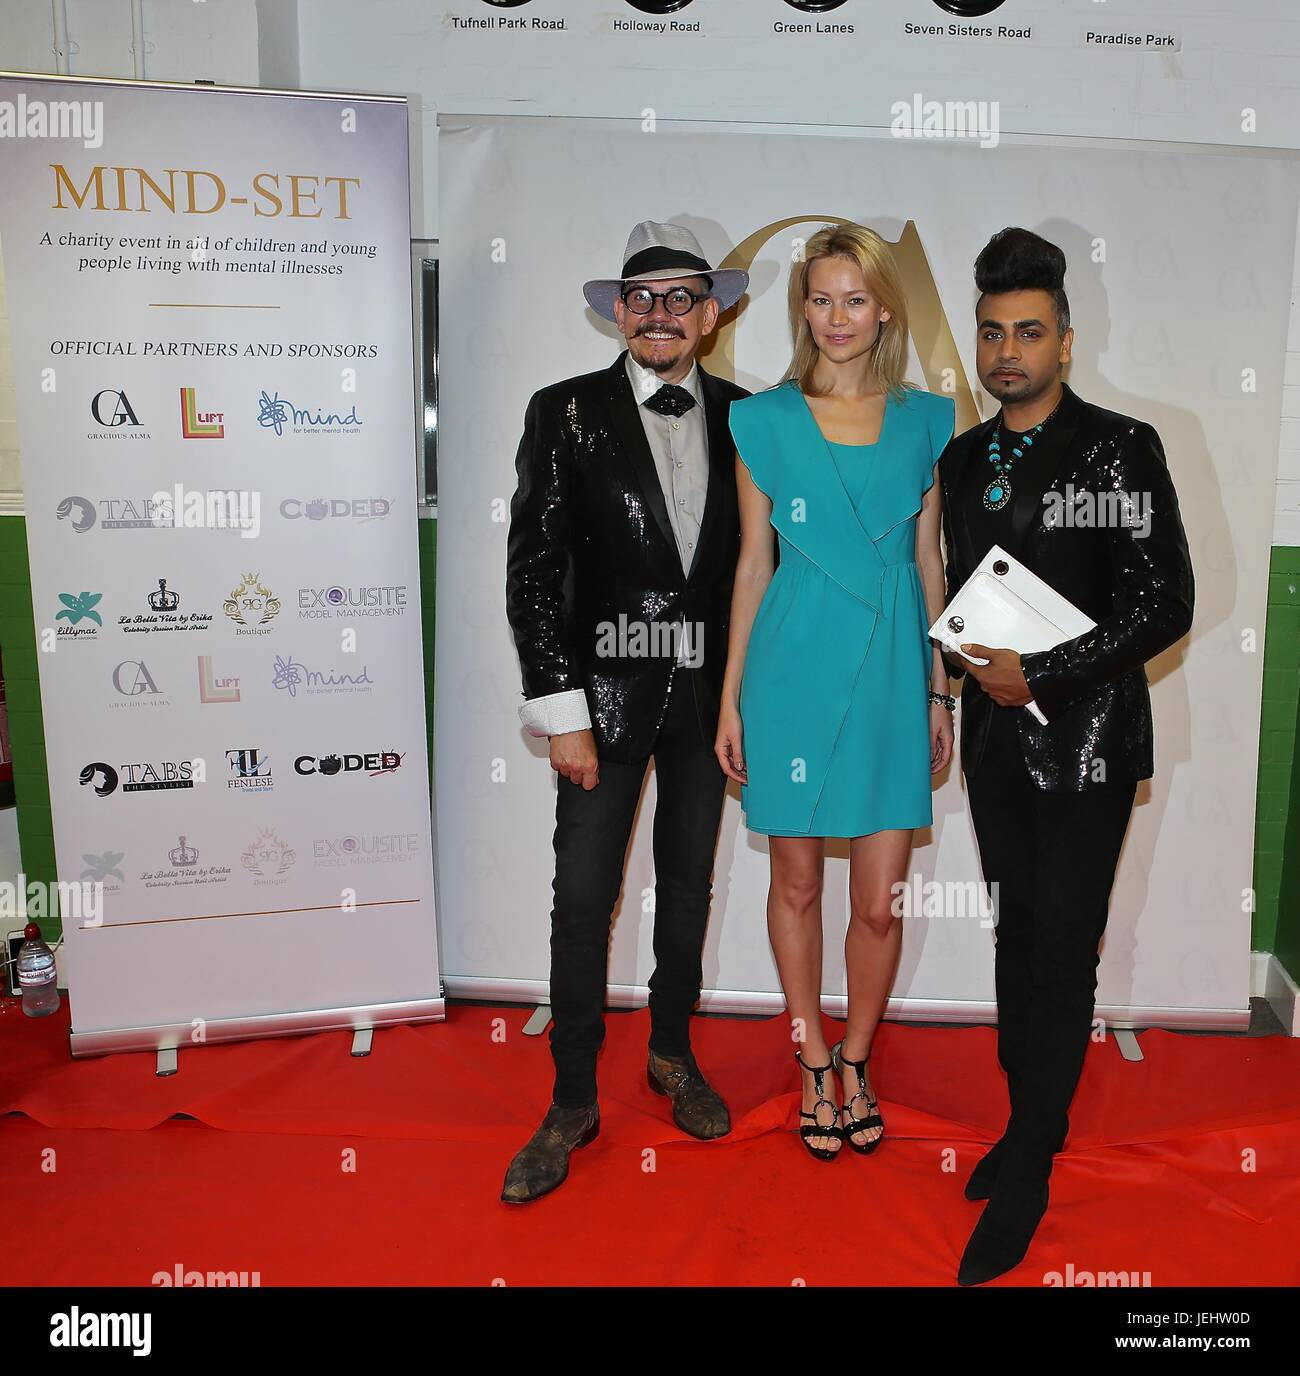 Mind Set Charity show at Lift youth club Angel London , backstage and red carpet Spencer Fearon and Chloe Jasmin - Stock Image